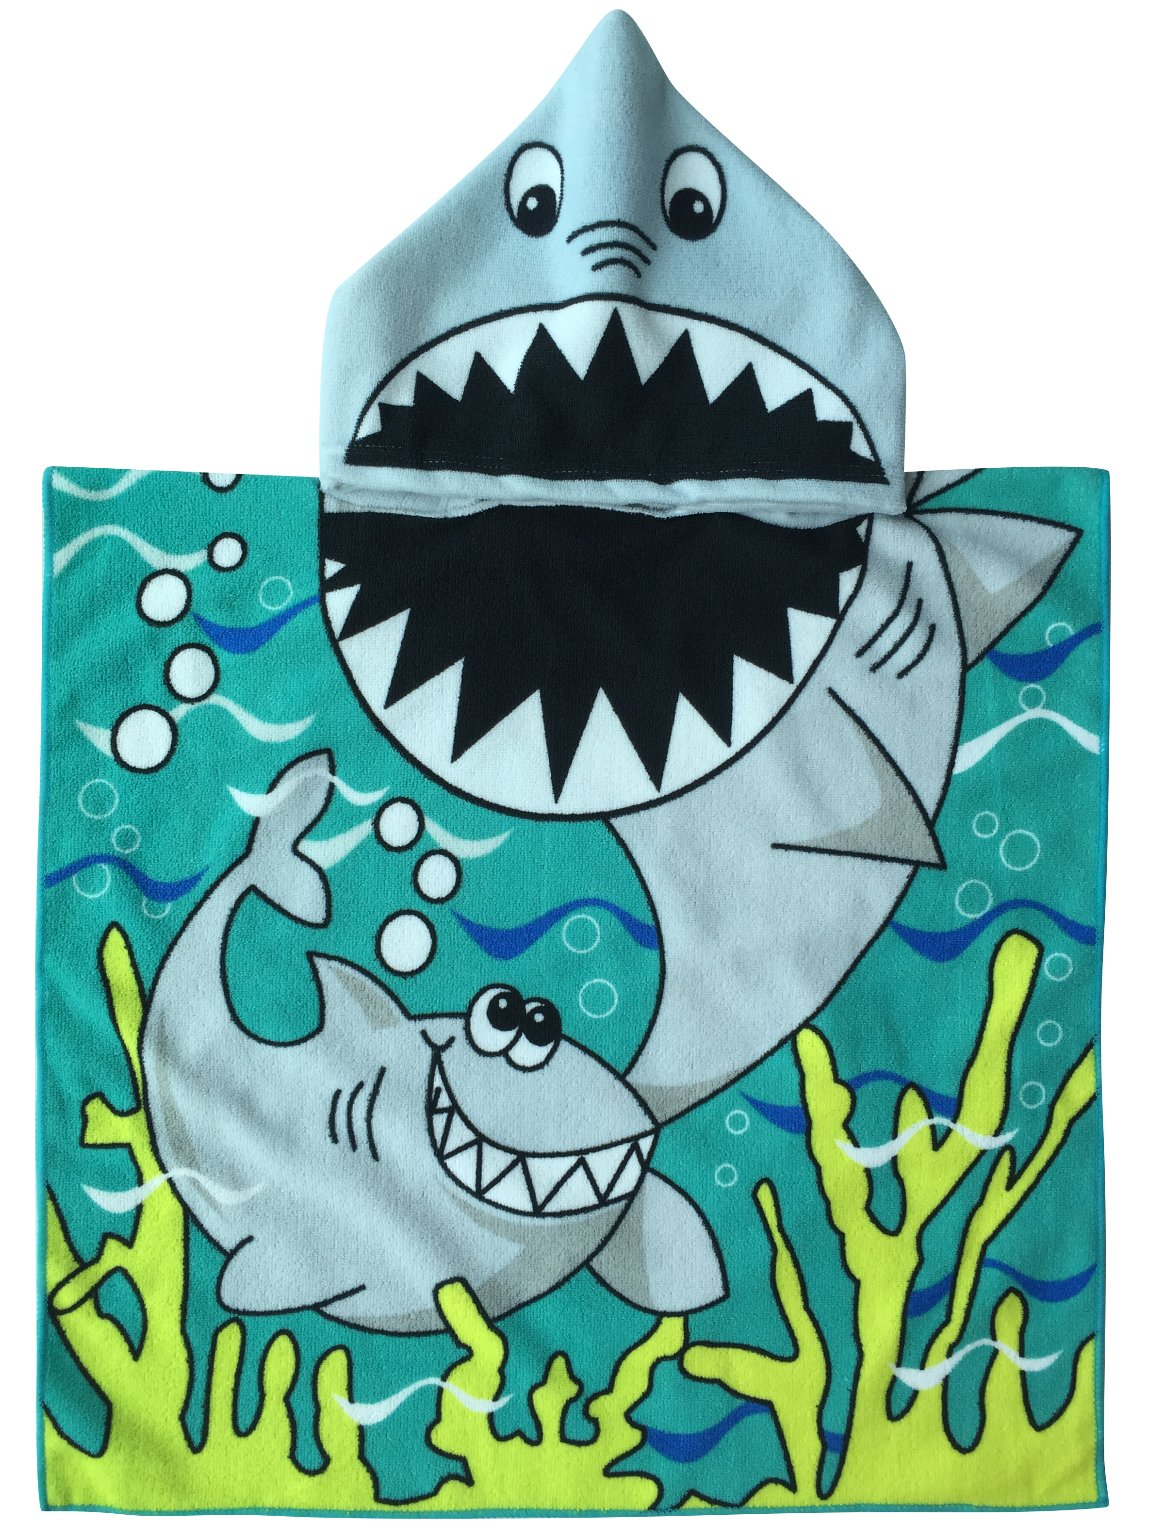 Athaelay Kids Beach Towel with Shark Printing Hooded Poncho Towels for Children Boys Strong Absorbent and Soft Microfibre Bath/Pool Cape for Boys